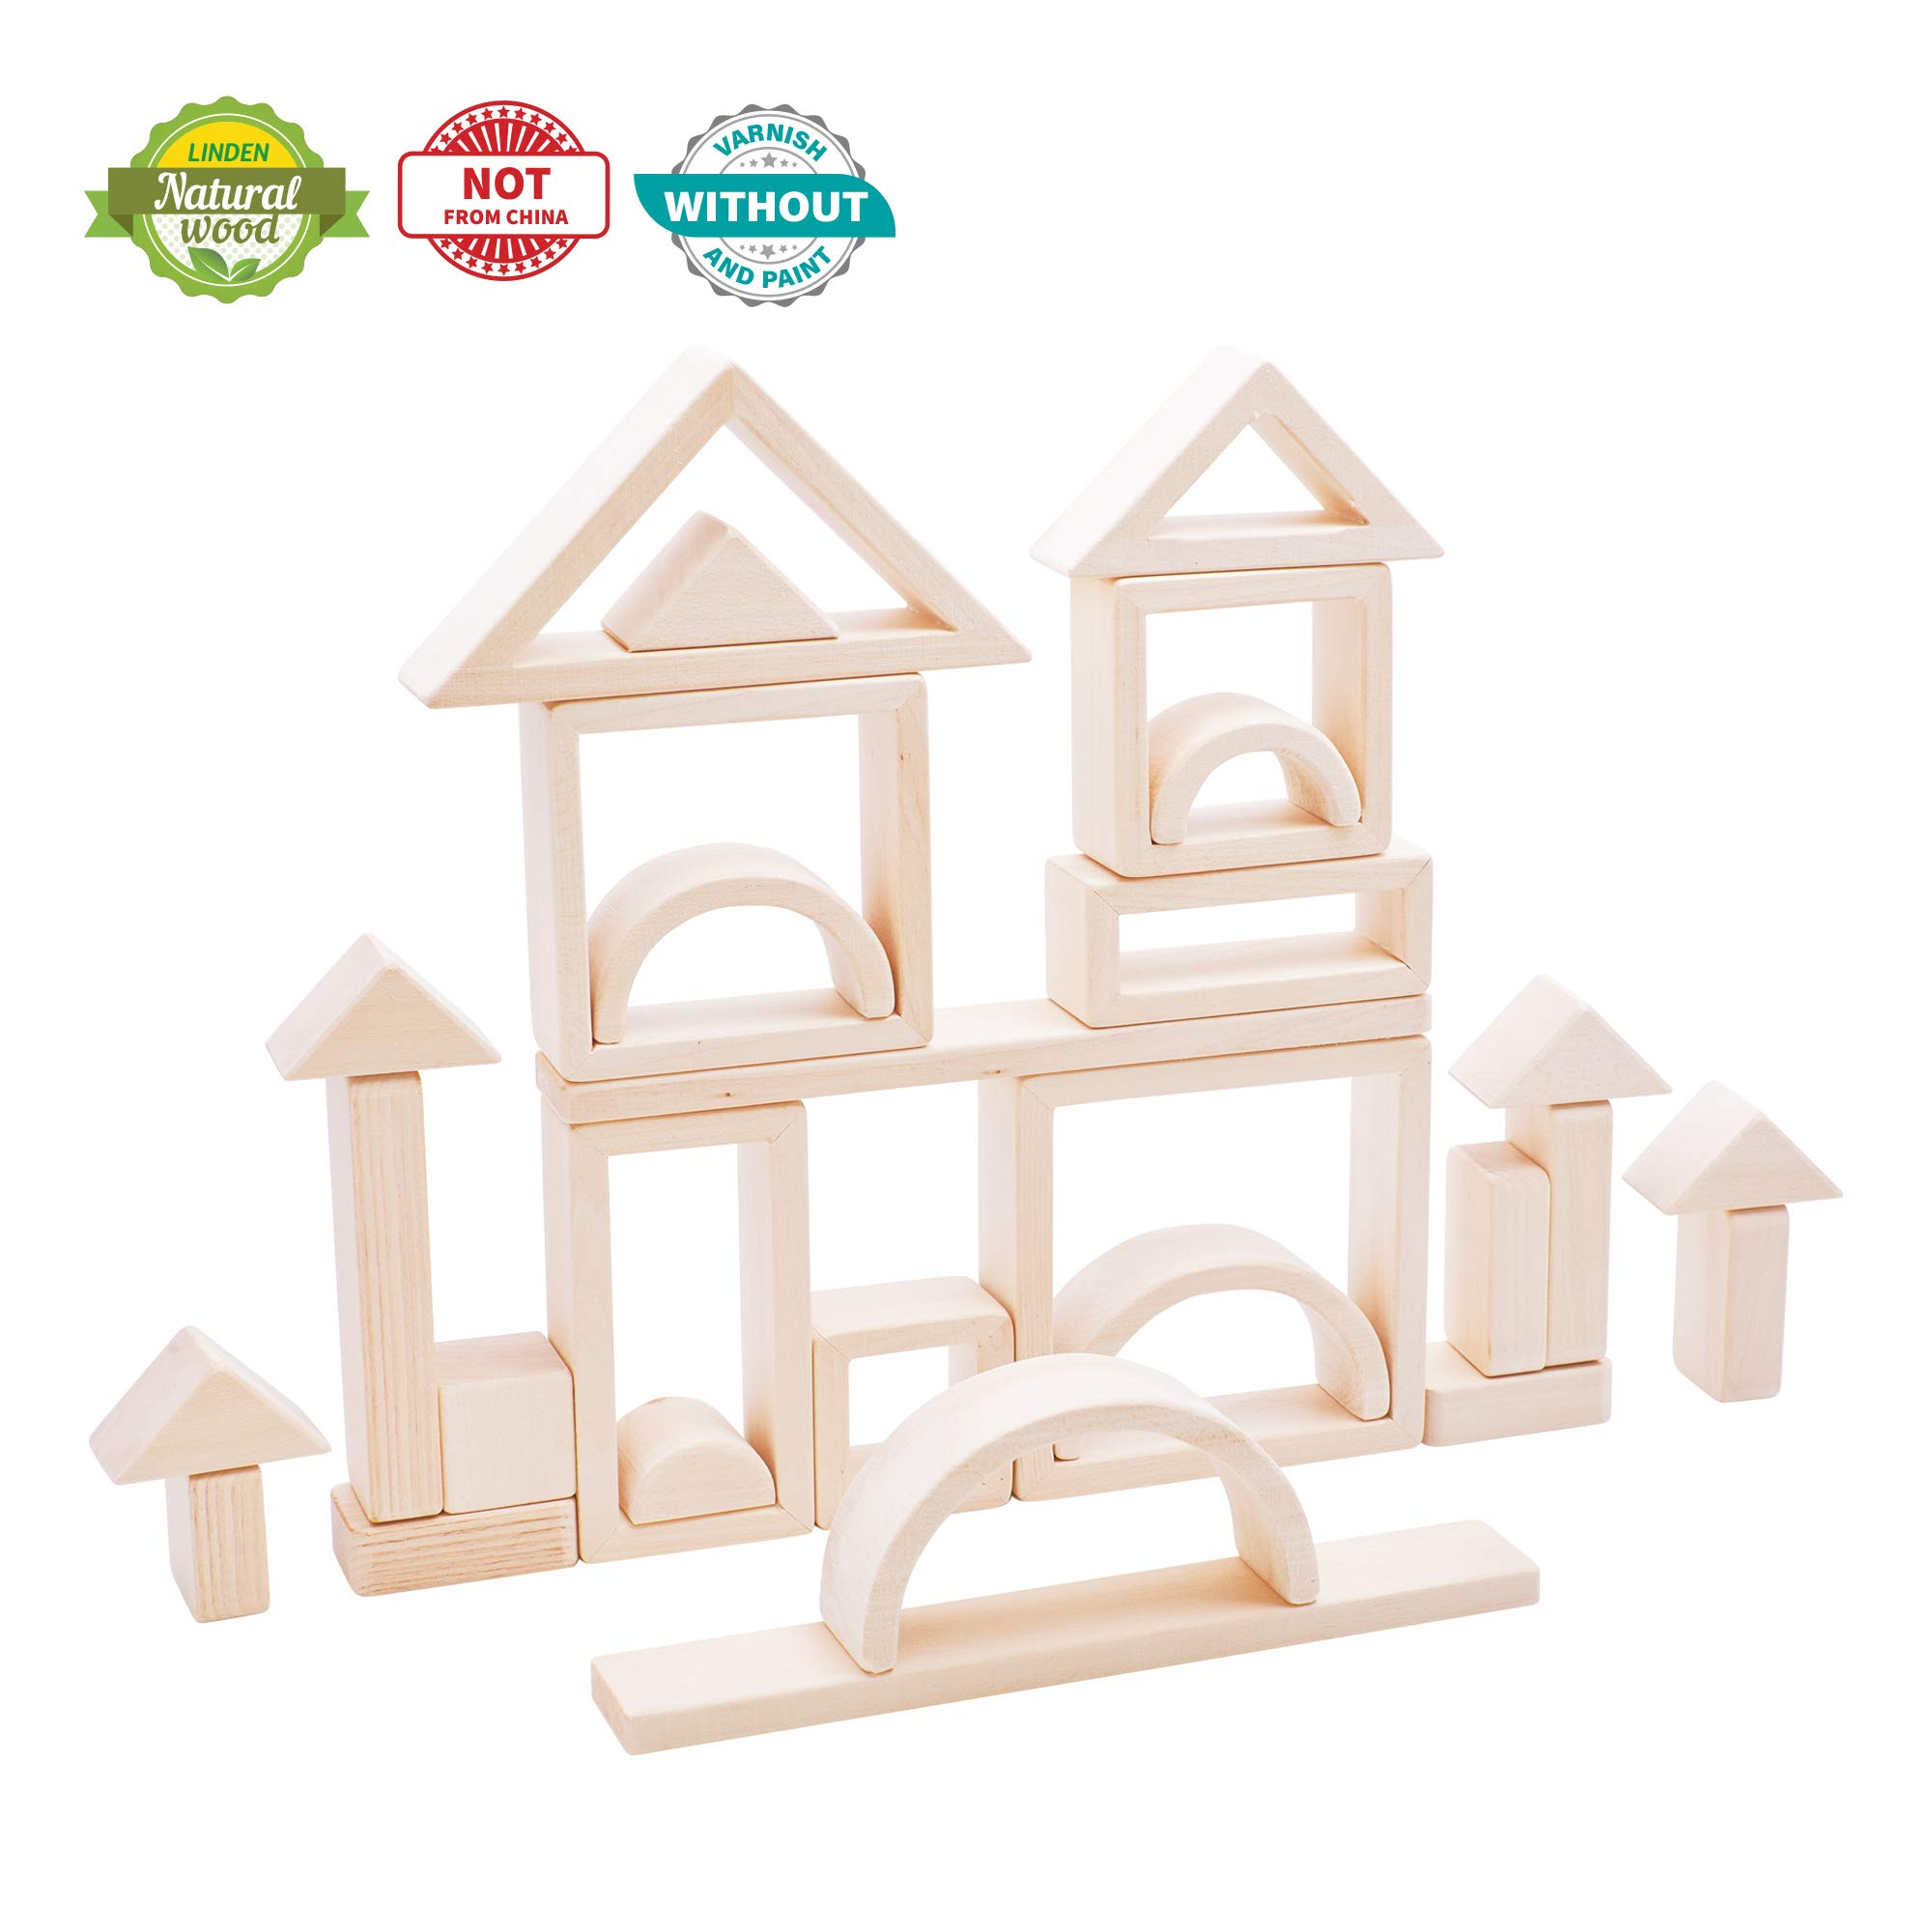 Kubi Dubi Wooden blocks For Toddlers - Building Educational Toys. Each learning Wood Block Like Pythagoras Builds Imagination, Habits to Succeed. Invest In Your Kids Today. Fit to 3-7 year old.